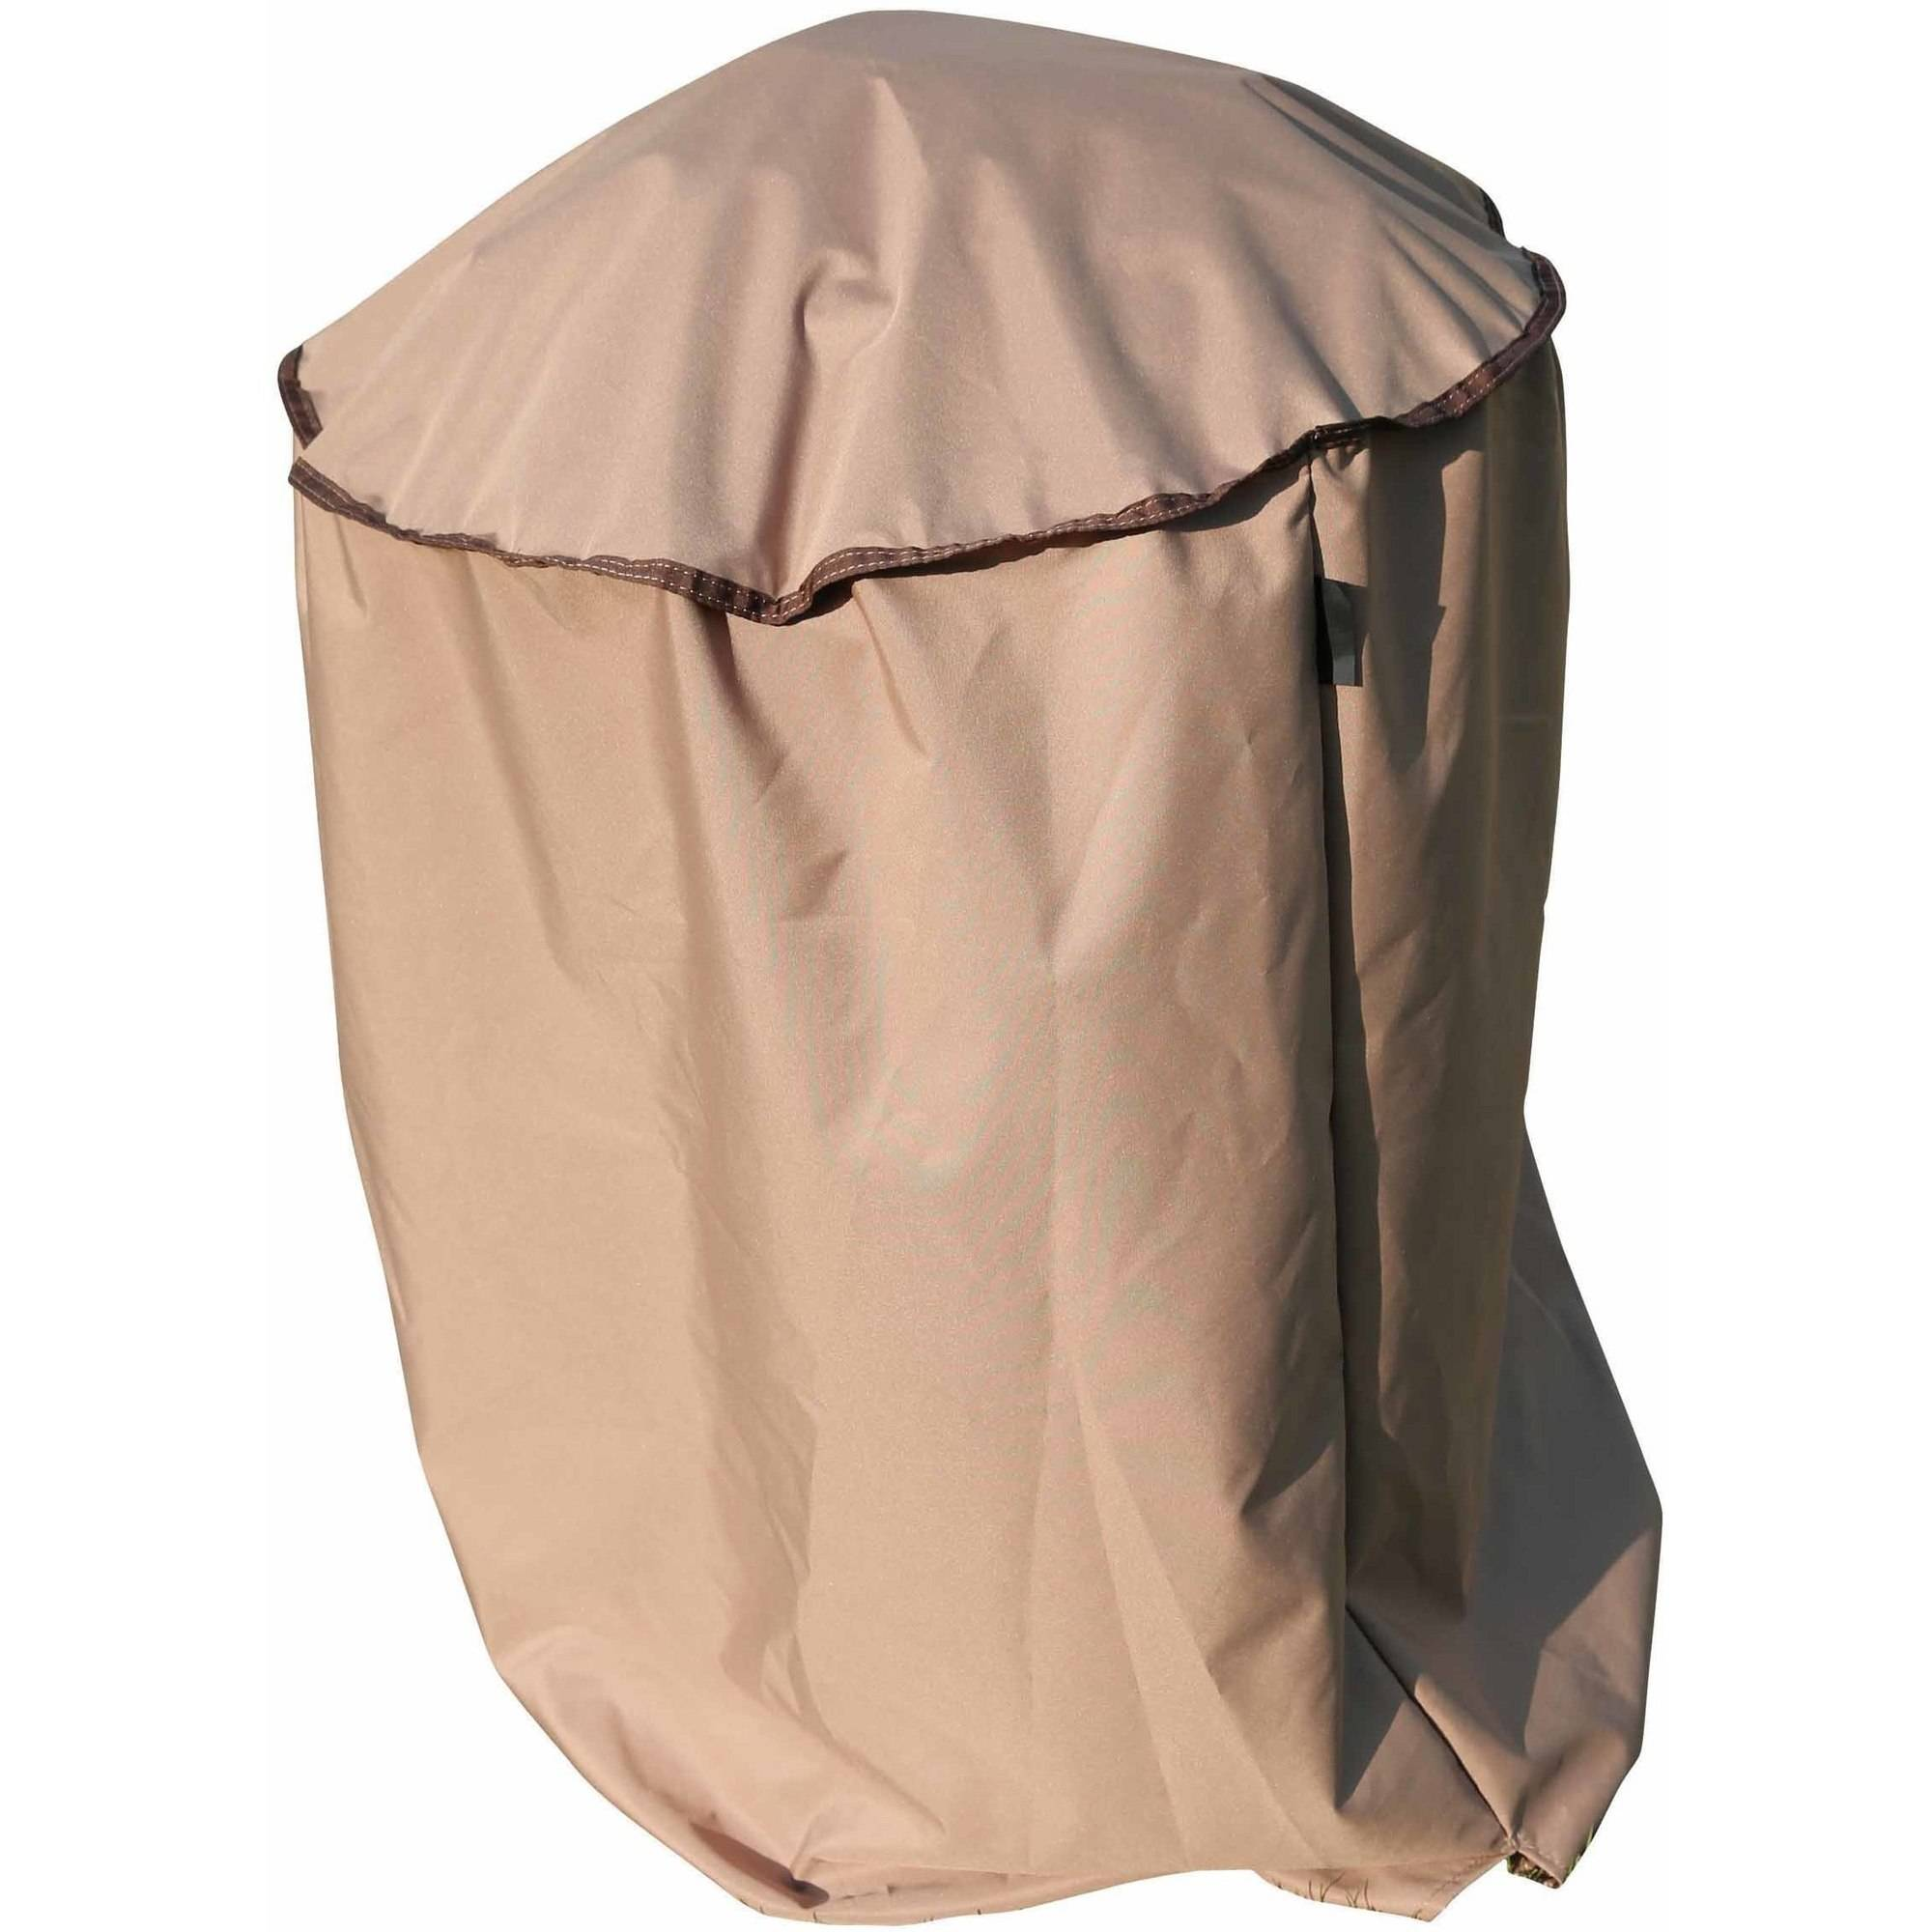 Sorara USA Kettle-Style BBQ Grill Cover, Large